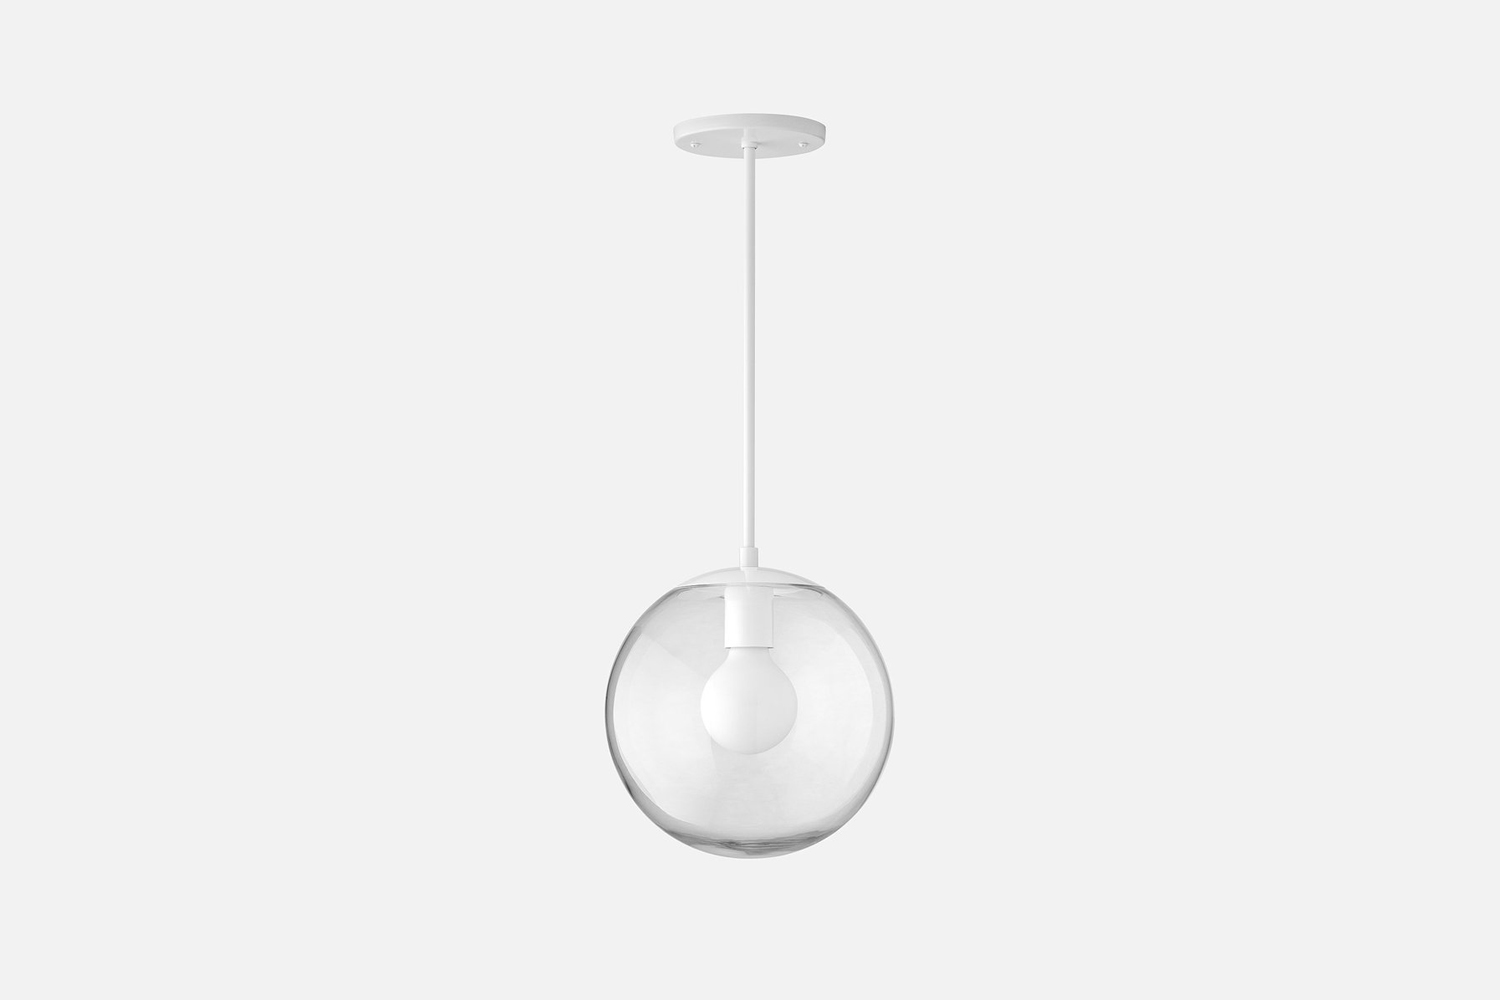 the schoolhouse luna cord pendant lamp with 6 inch shade is \$\299. the style i 13